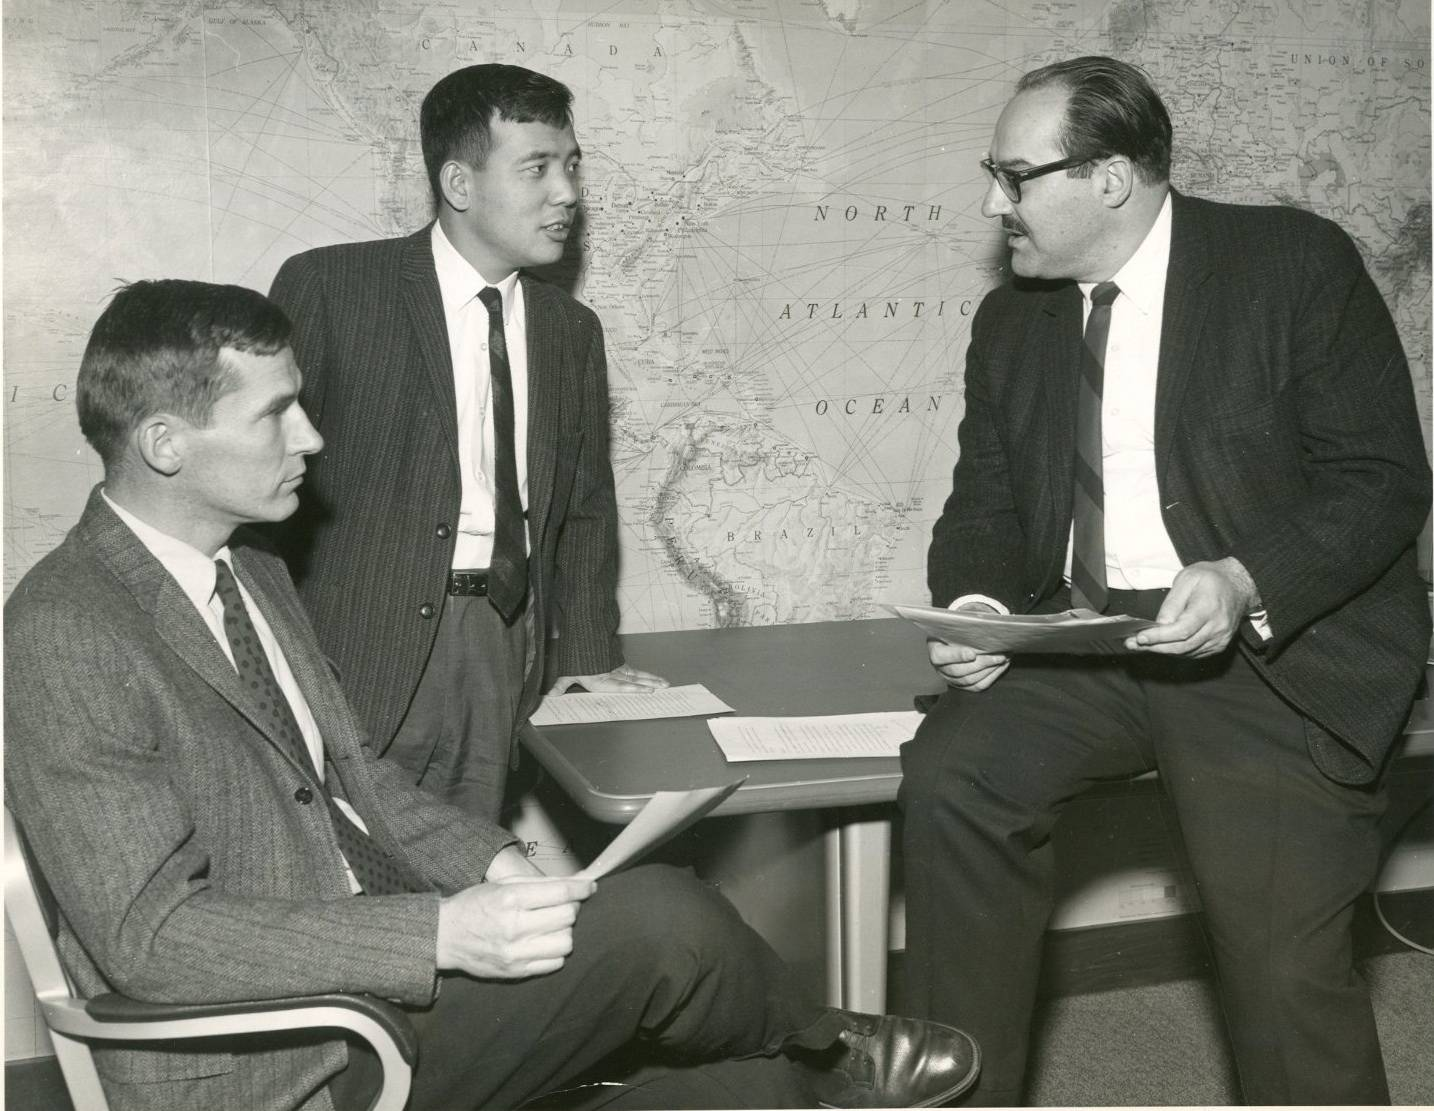 archival image of researchers meeting at the Geophysical Fluid Dynamics Laboratory